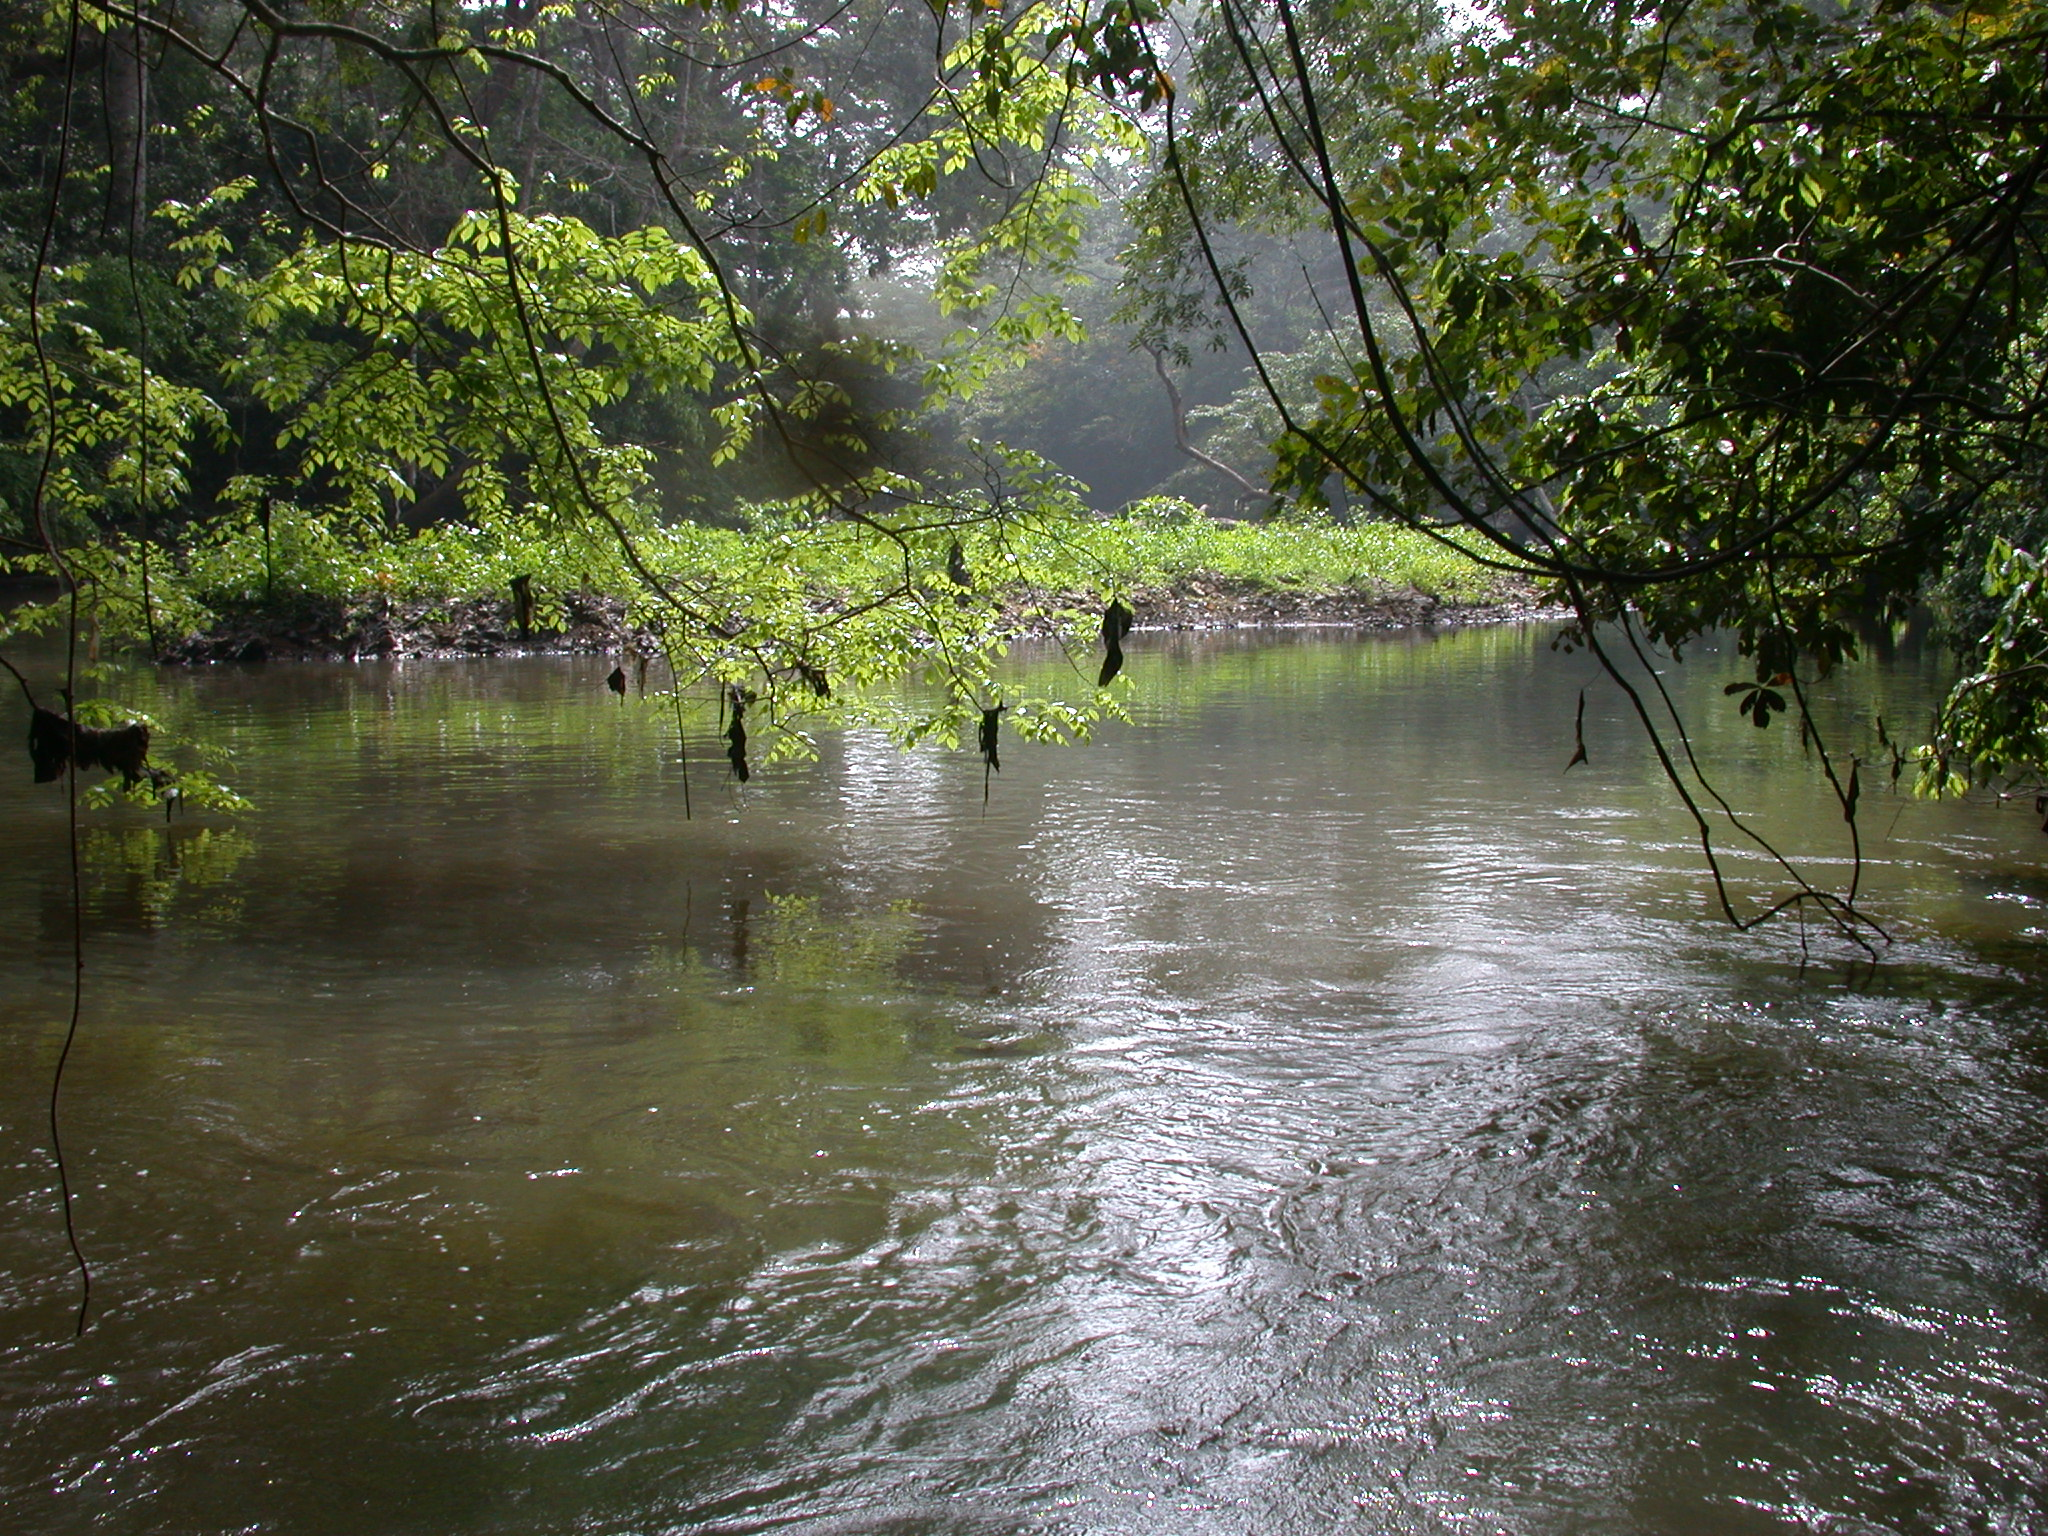 Swirling Eddies in Osun River, Osun Sacred Grove, Oshogbo, Nigeria